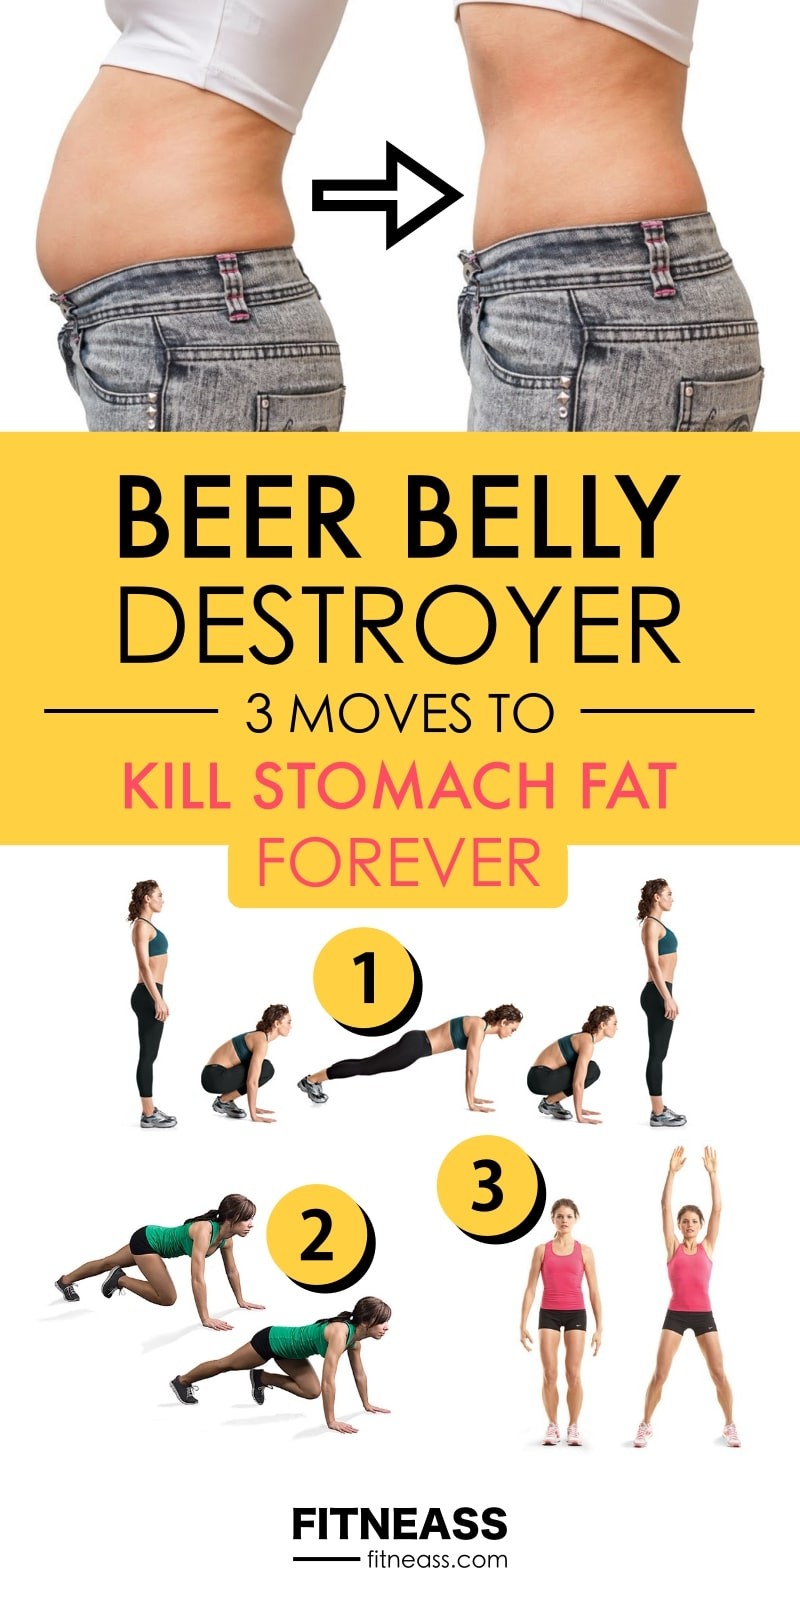 3-Move Workout To Get Rid Of Beer Belly